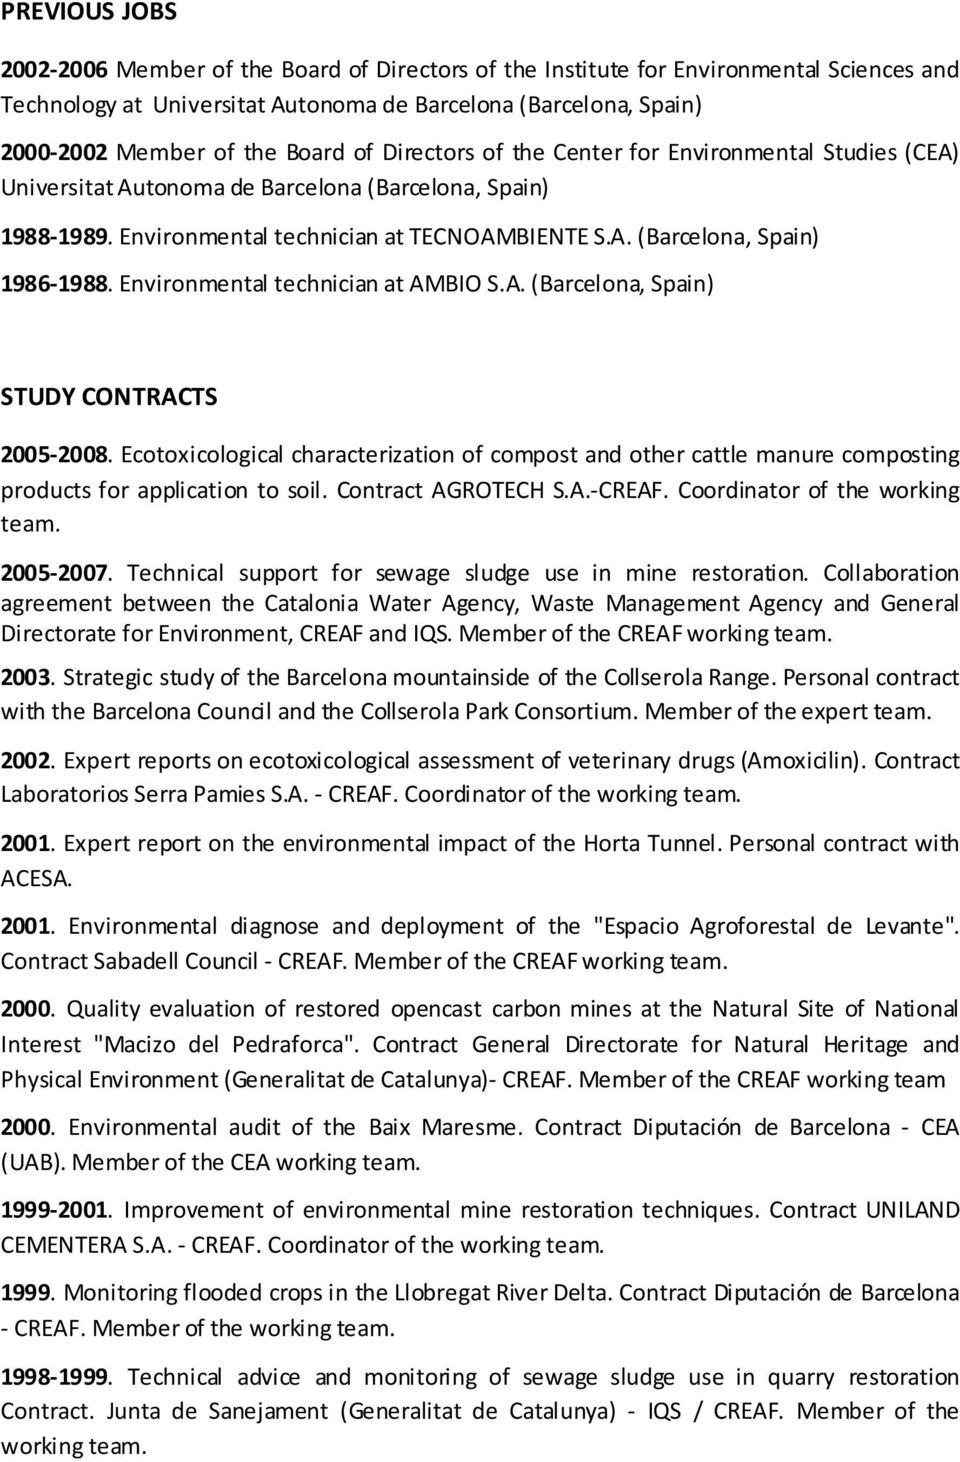 Environmental technician at AMBIO S.A. (Barcelona, Spain) STUDY CONTRACTS 2005-2008. Ecotoxicological characterization of compost and other cattle manure composting products for application to soil.